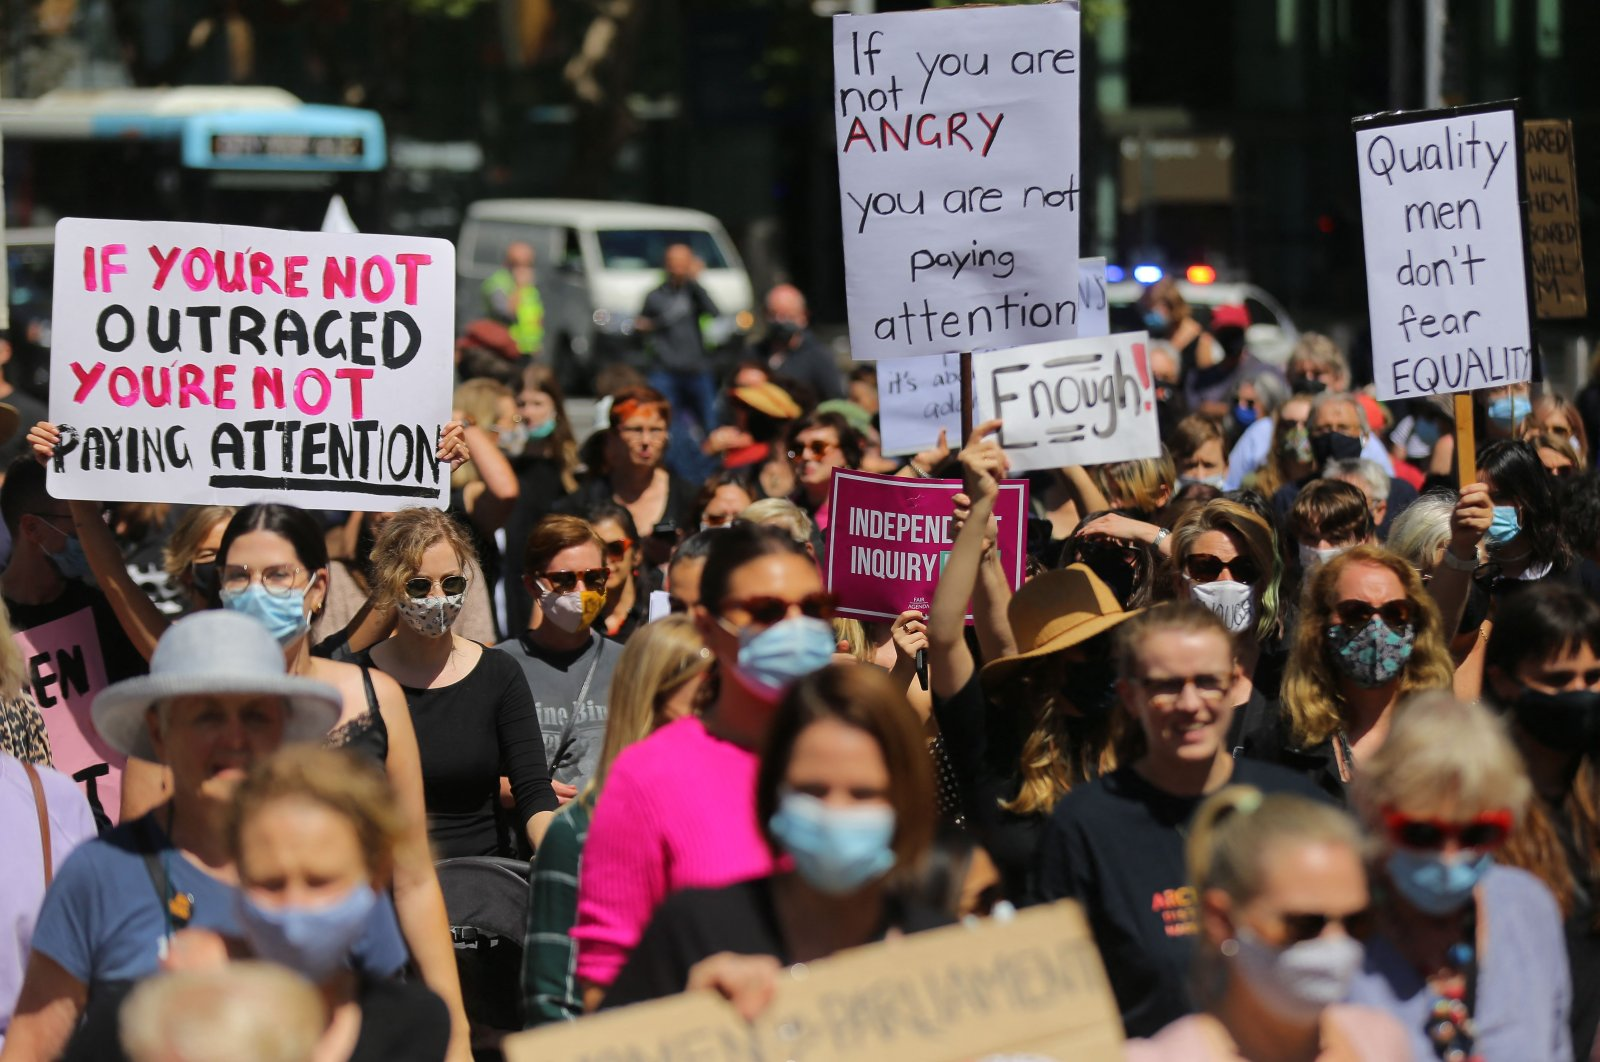 Protesters attend a rally against sexual violence and gender inequality in Sydney, Australia, March 15, 2021. (AFP Photo)